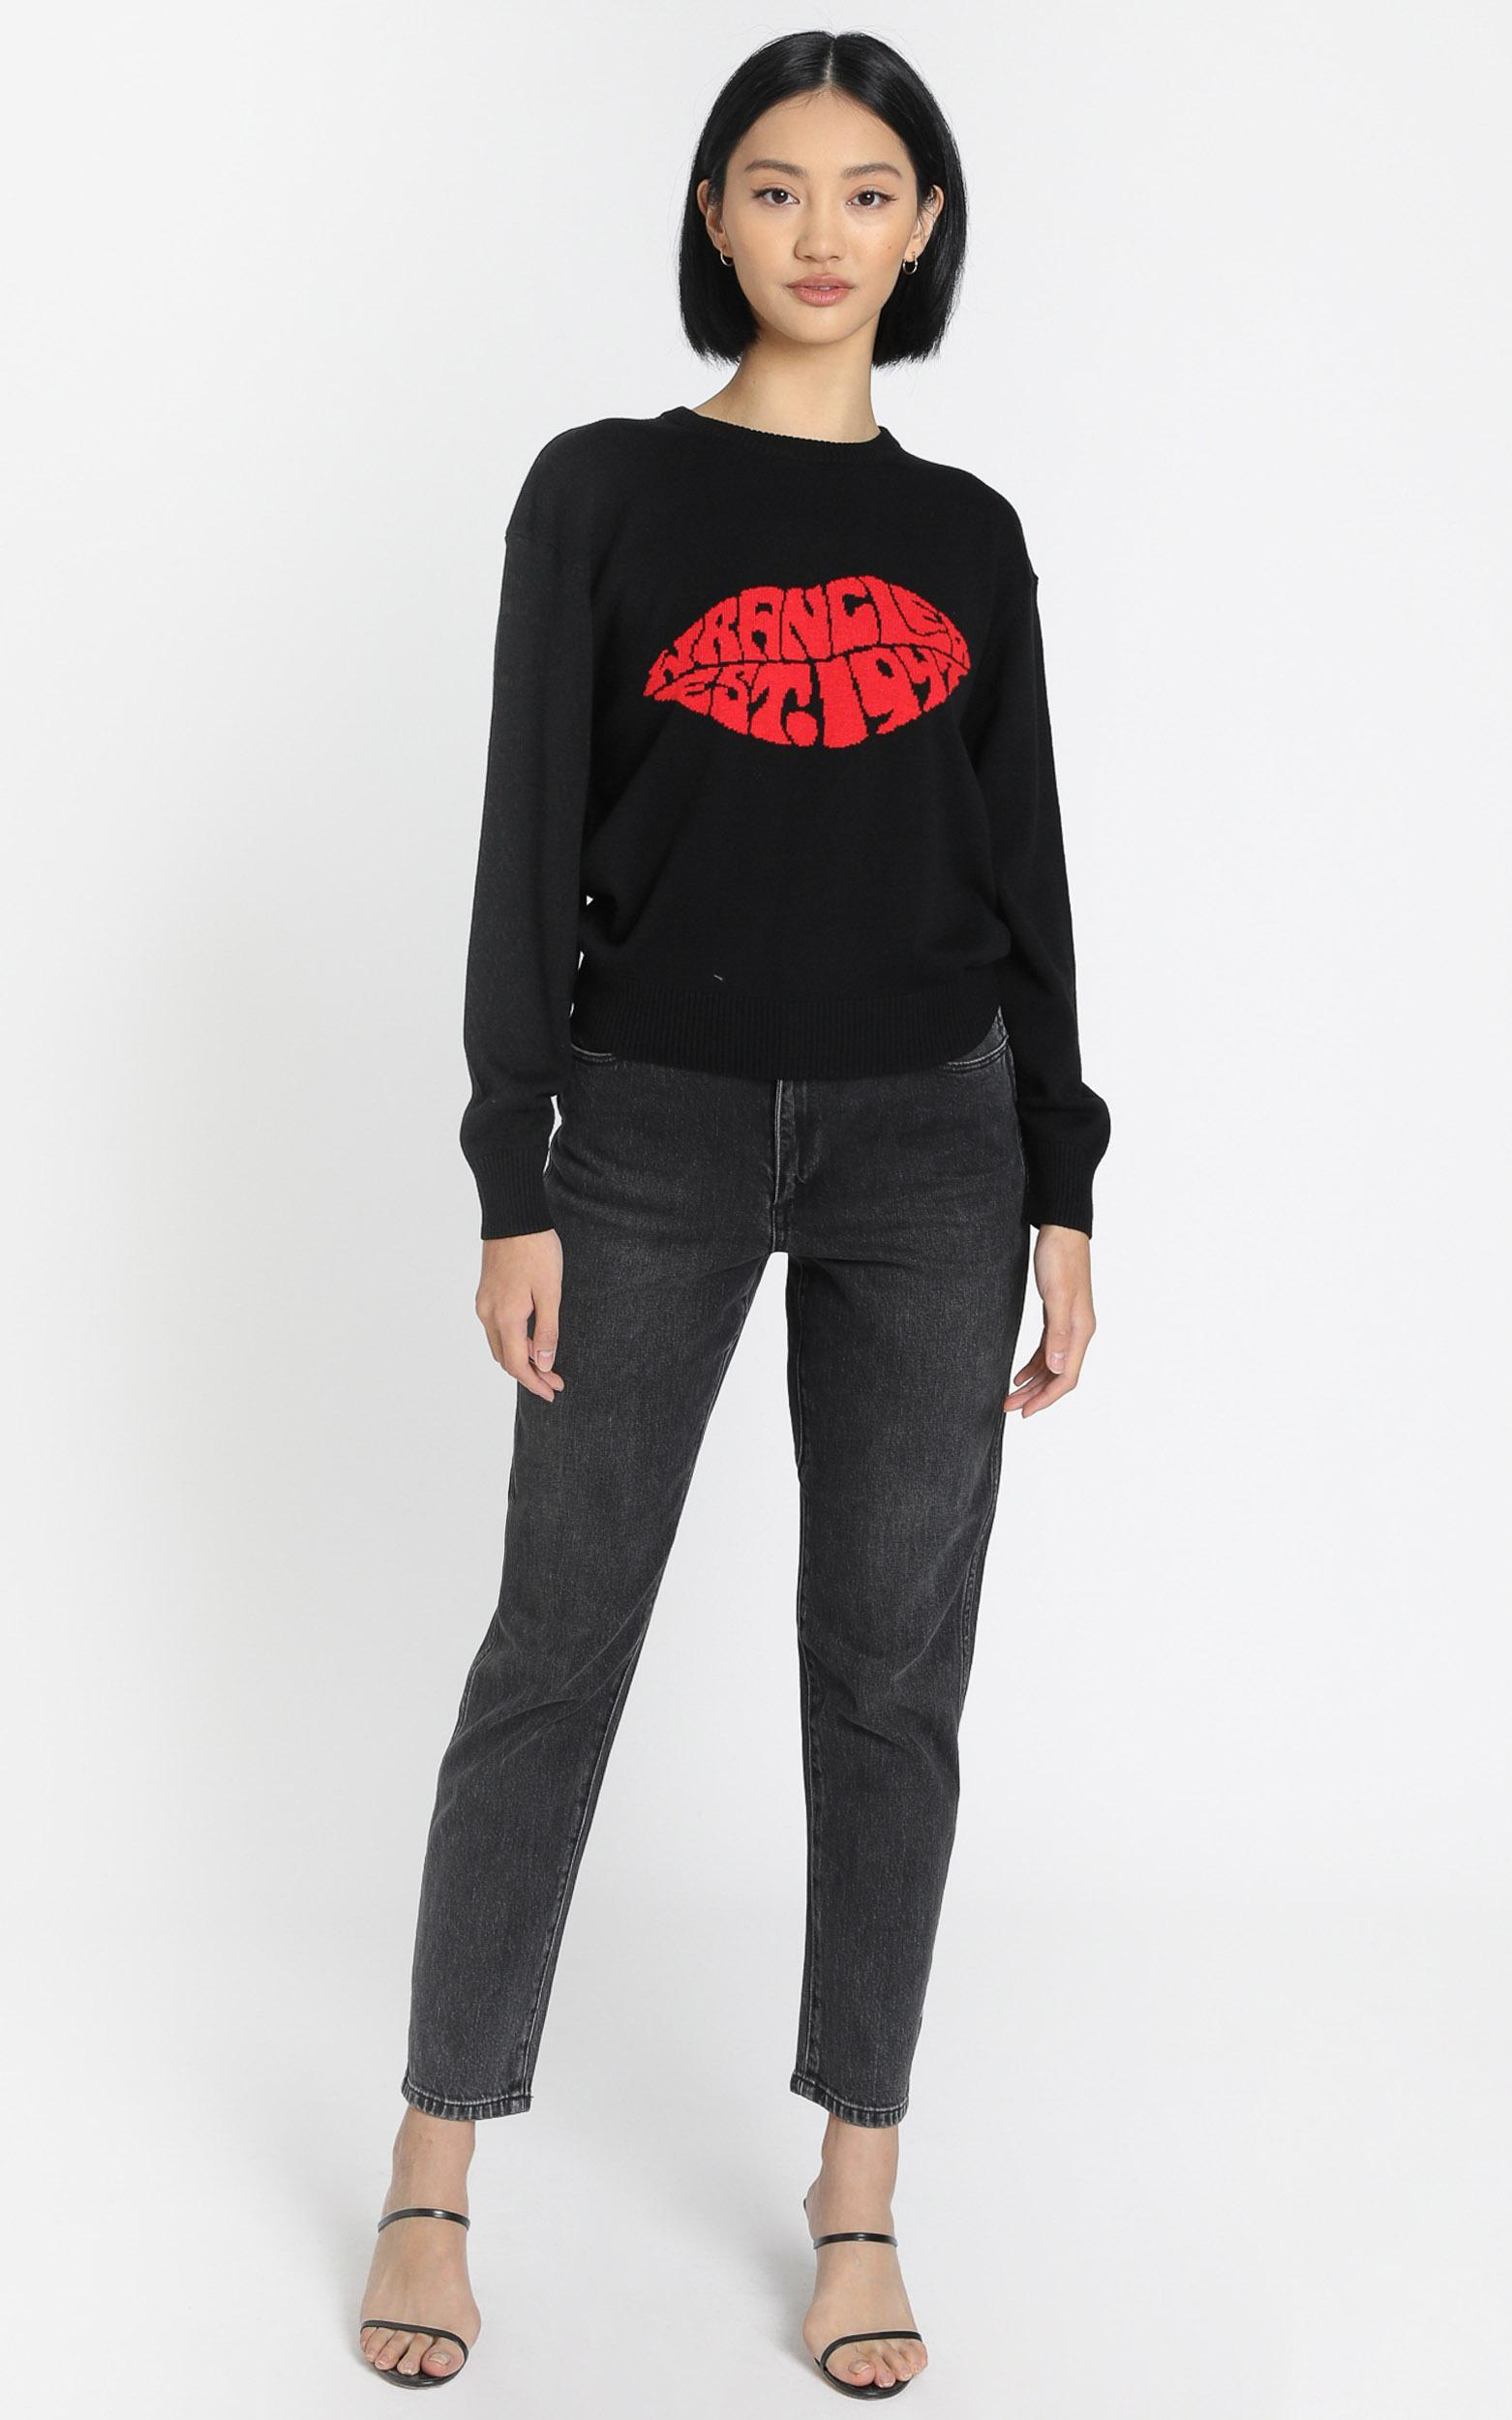 Wrangler - Lips Sweater in Black - 6 (XS), Black, hi-res image number null